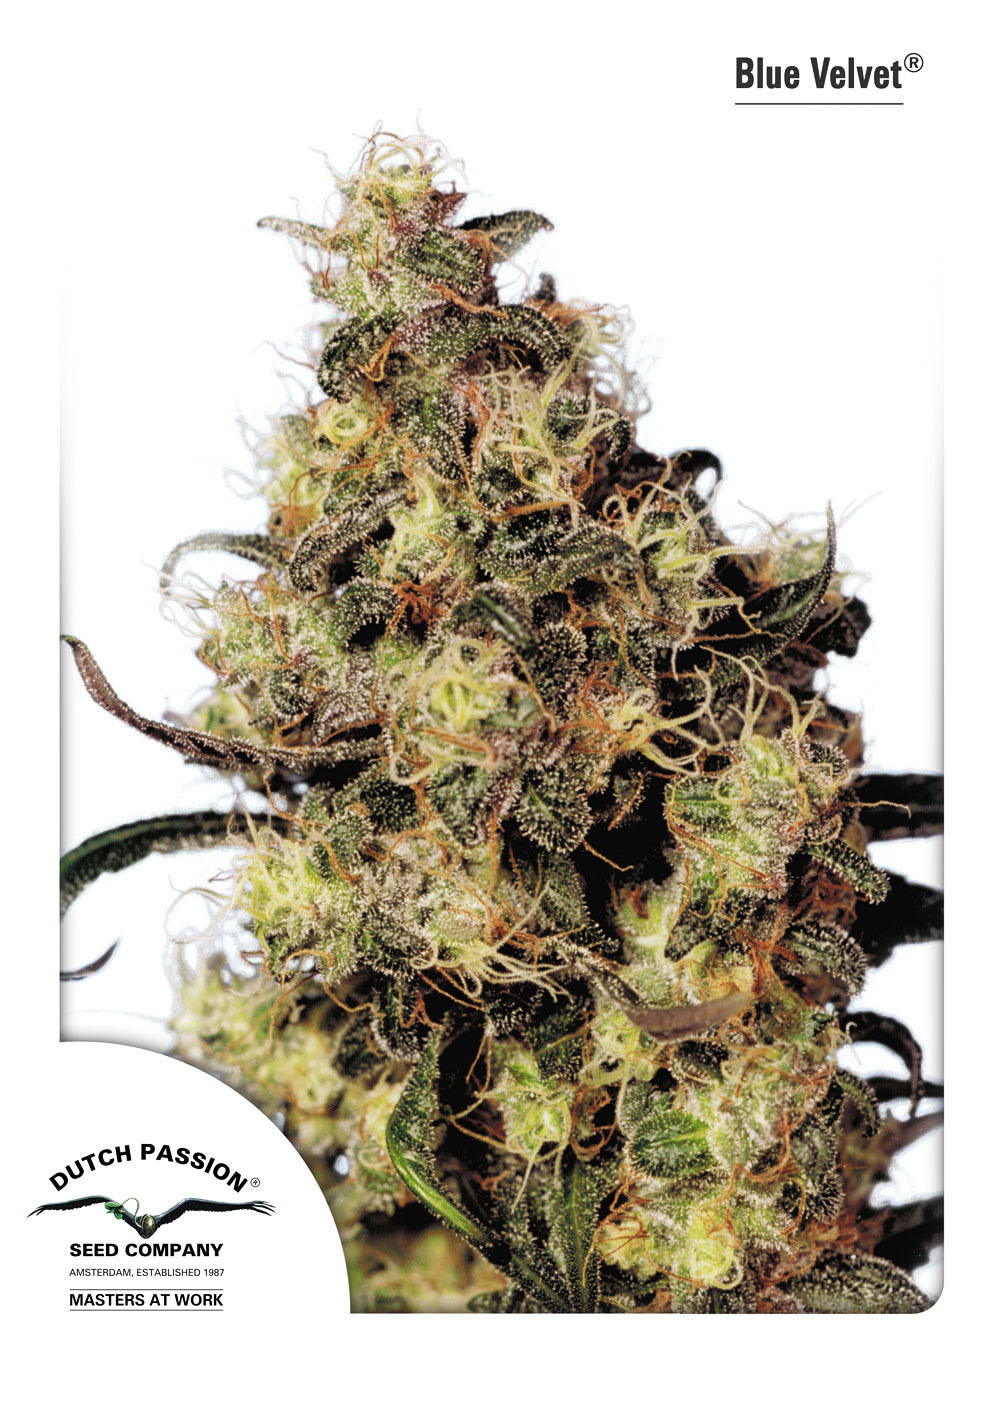 Recenzja Odmiany Blue Velvet od Dutch Passion, Dutch Seeds